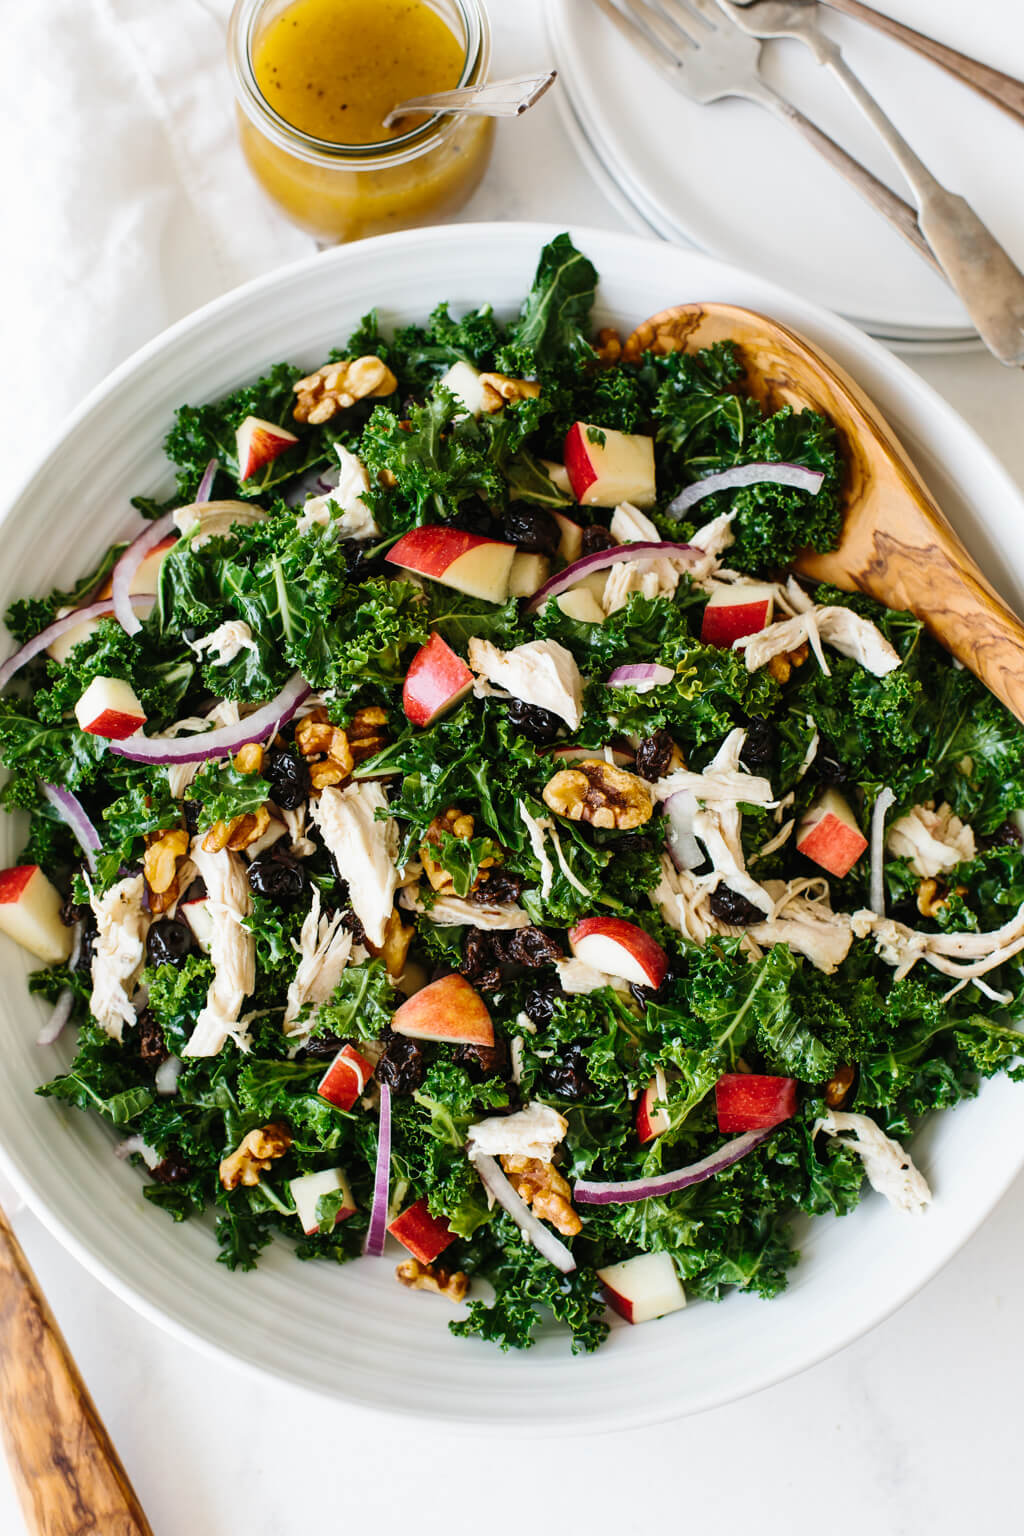 Kale salad with chicken and apples on a white table